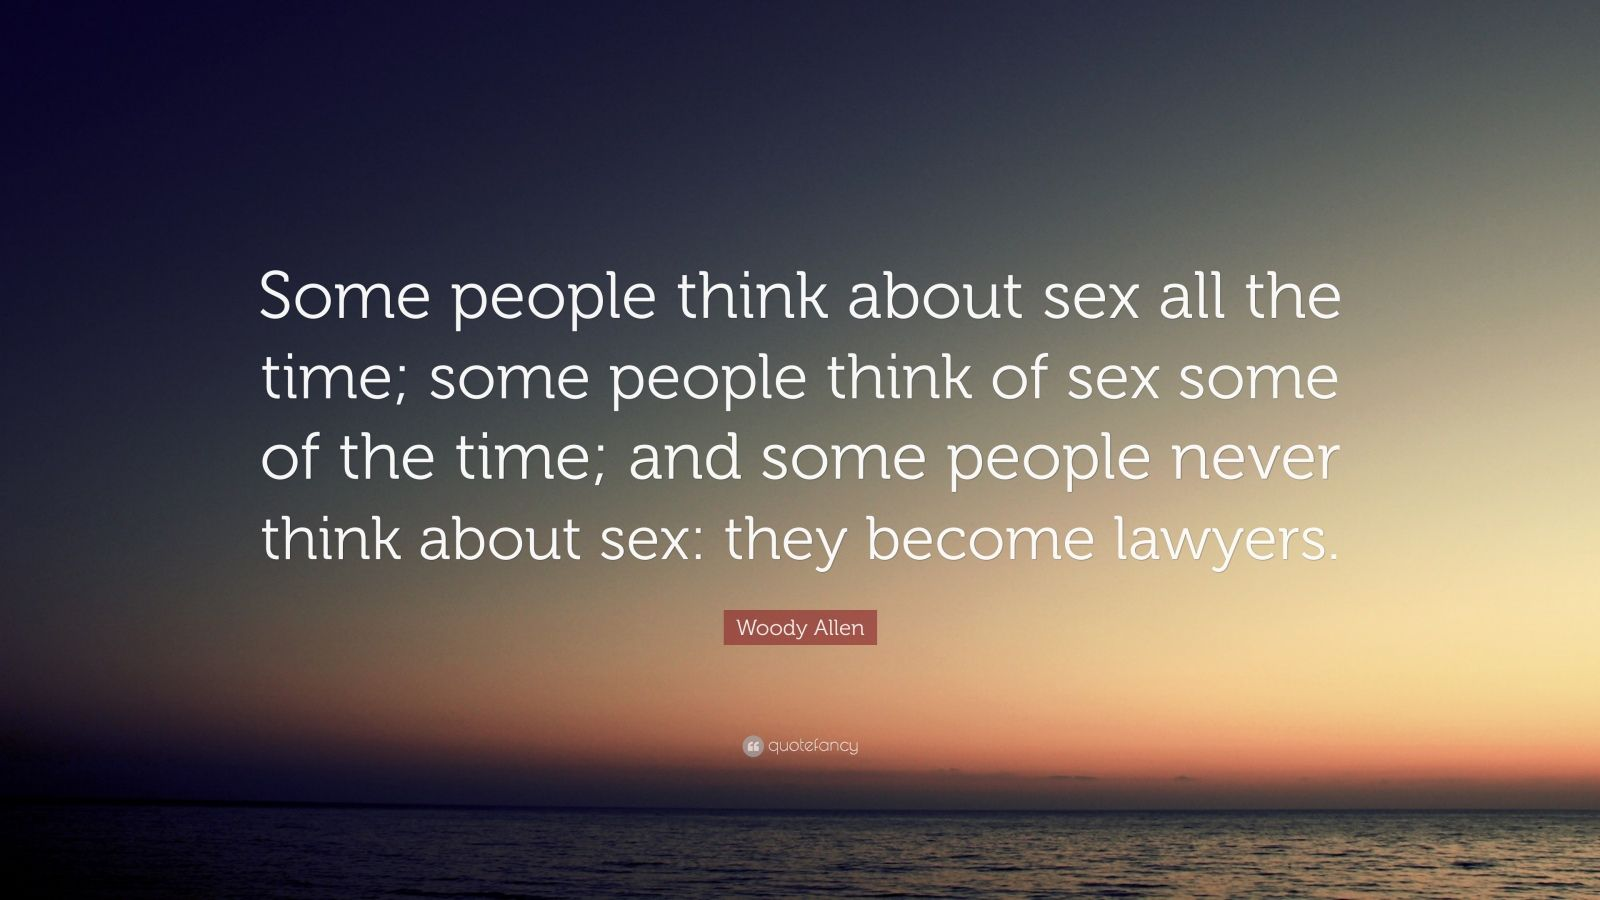 """Woody Allen Quote: """"Some people think about sex all the time; some people think of sex some of the time; and some people never think about sex: they become lawyers."""""""